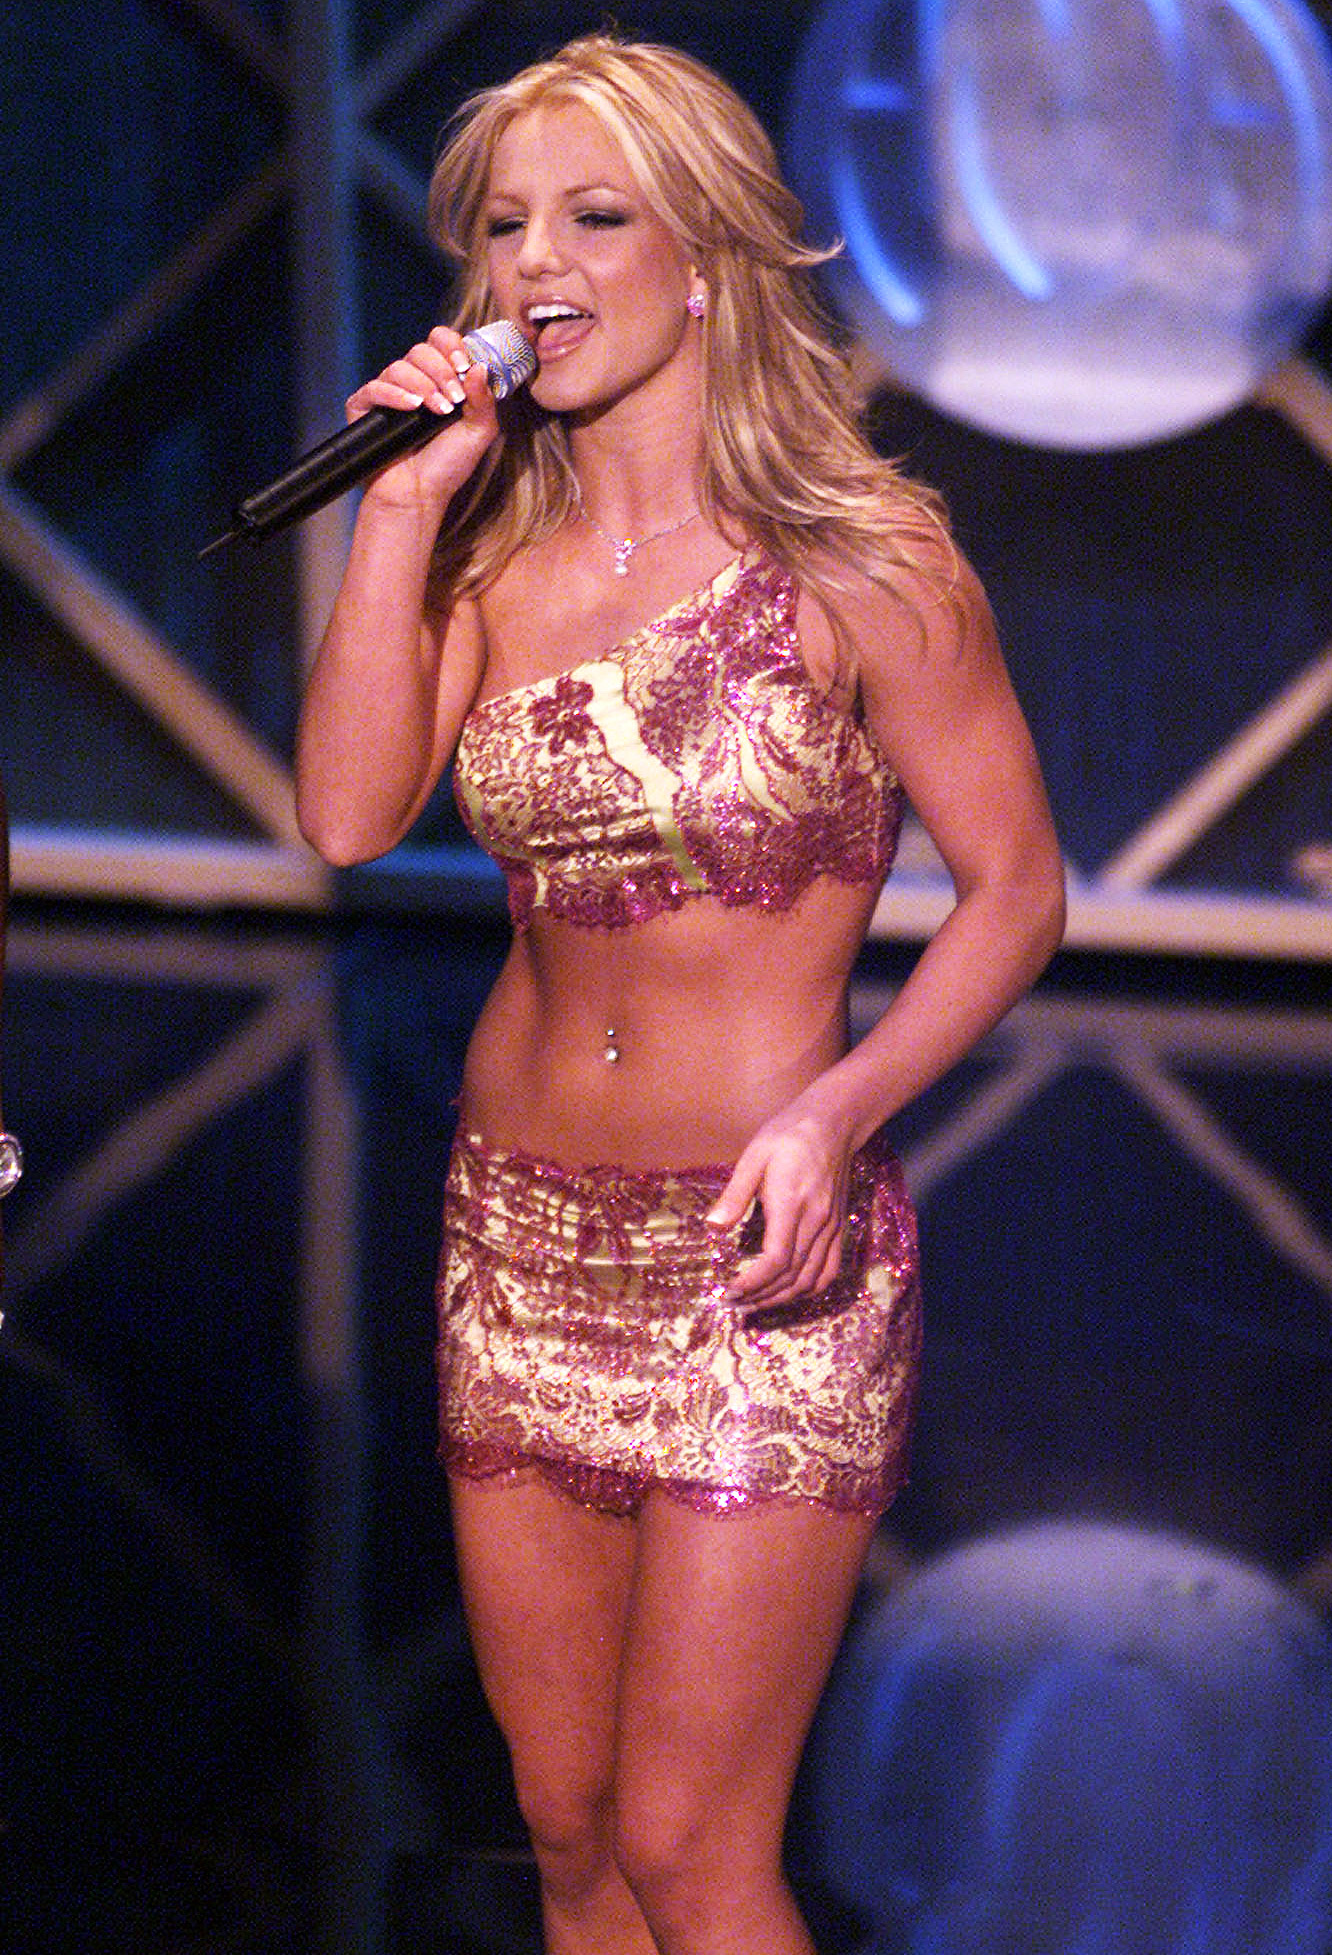 Britney Spears appears at the 28th Annual American Music Awards